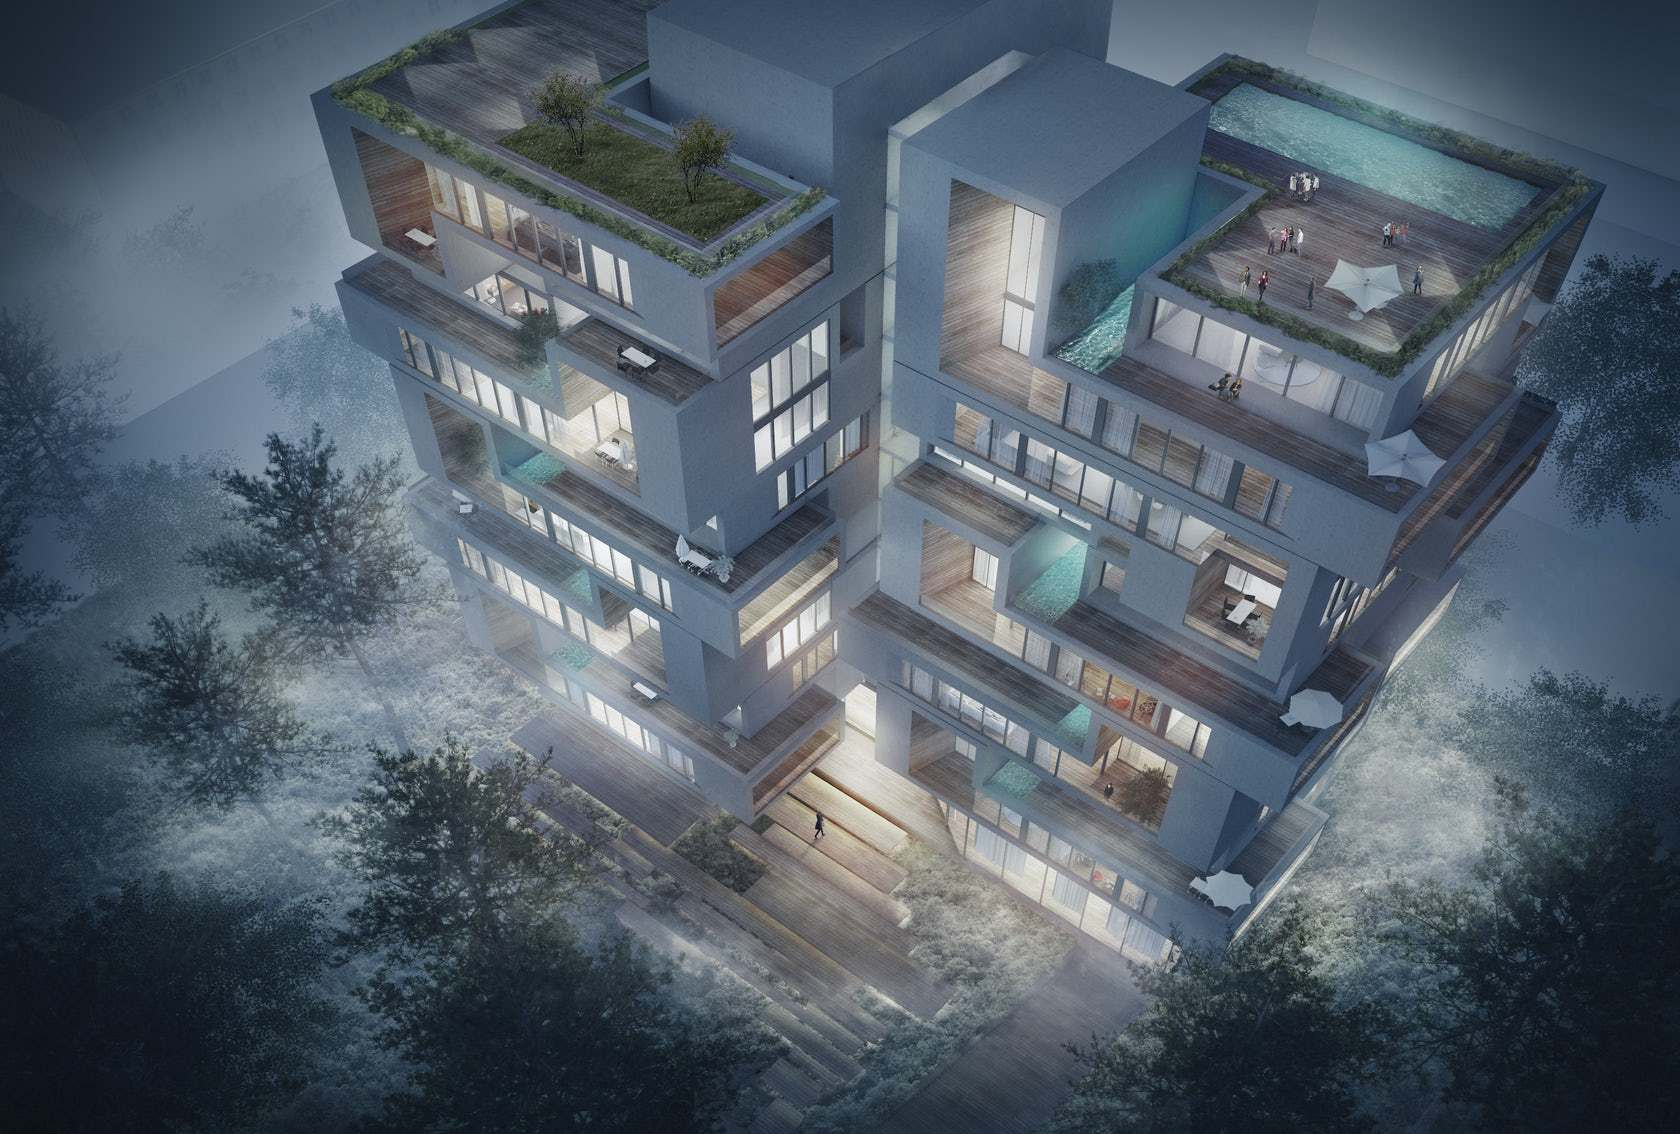 Challenge Studio's Award-Winning Design Envisions a New Residential Typology